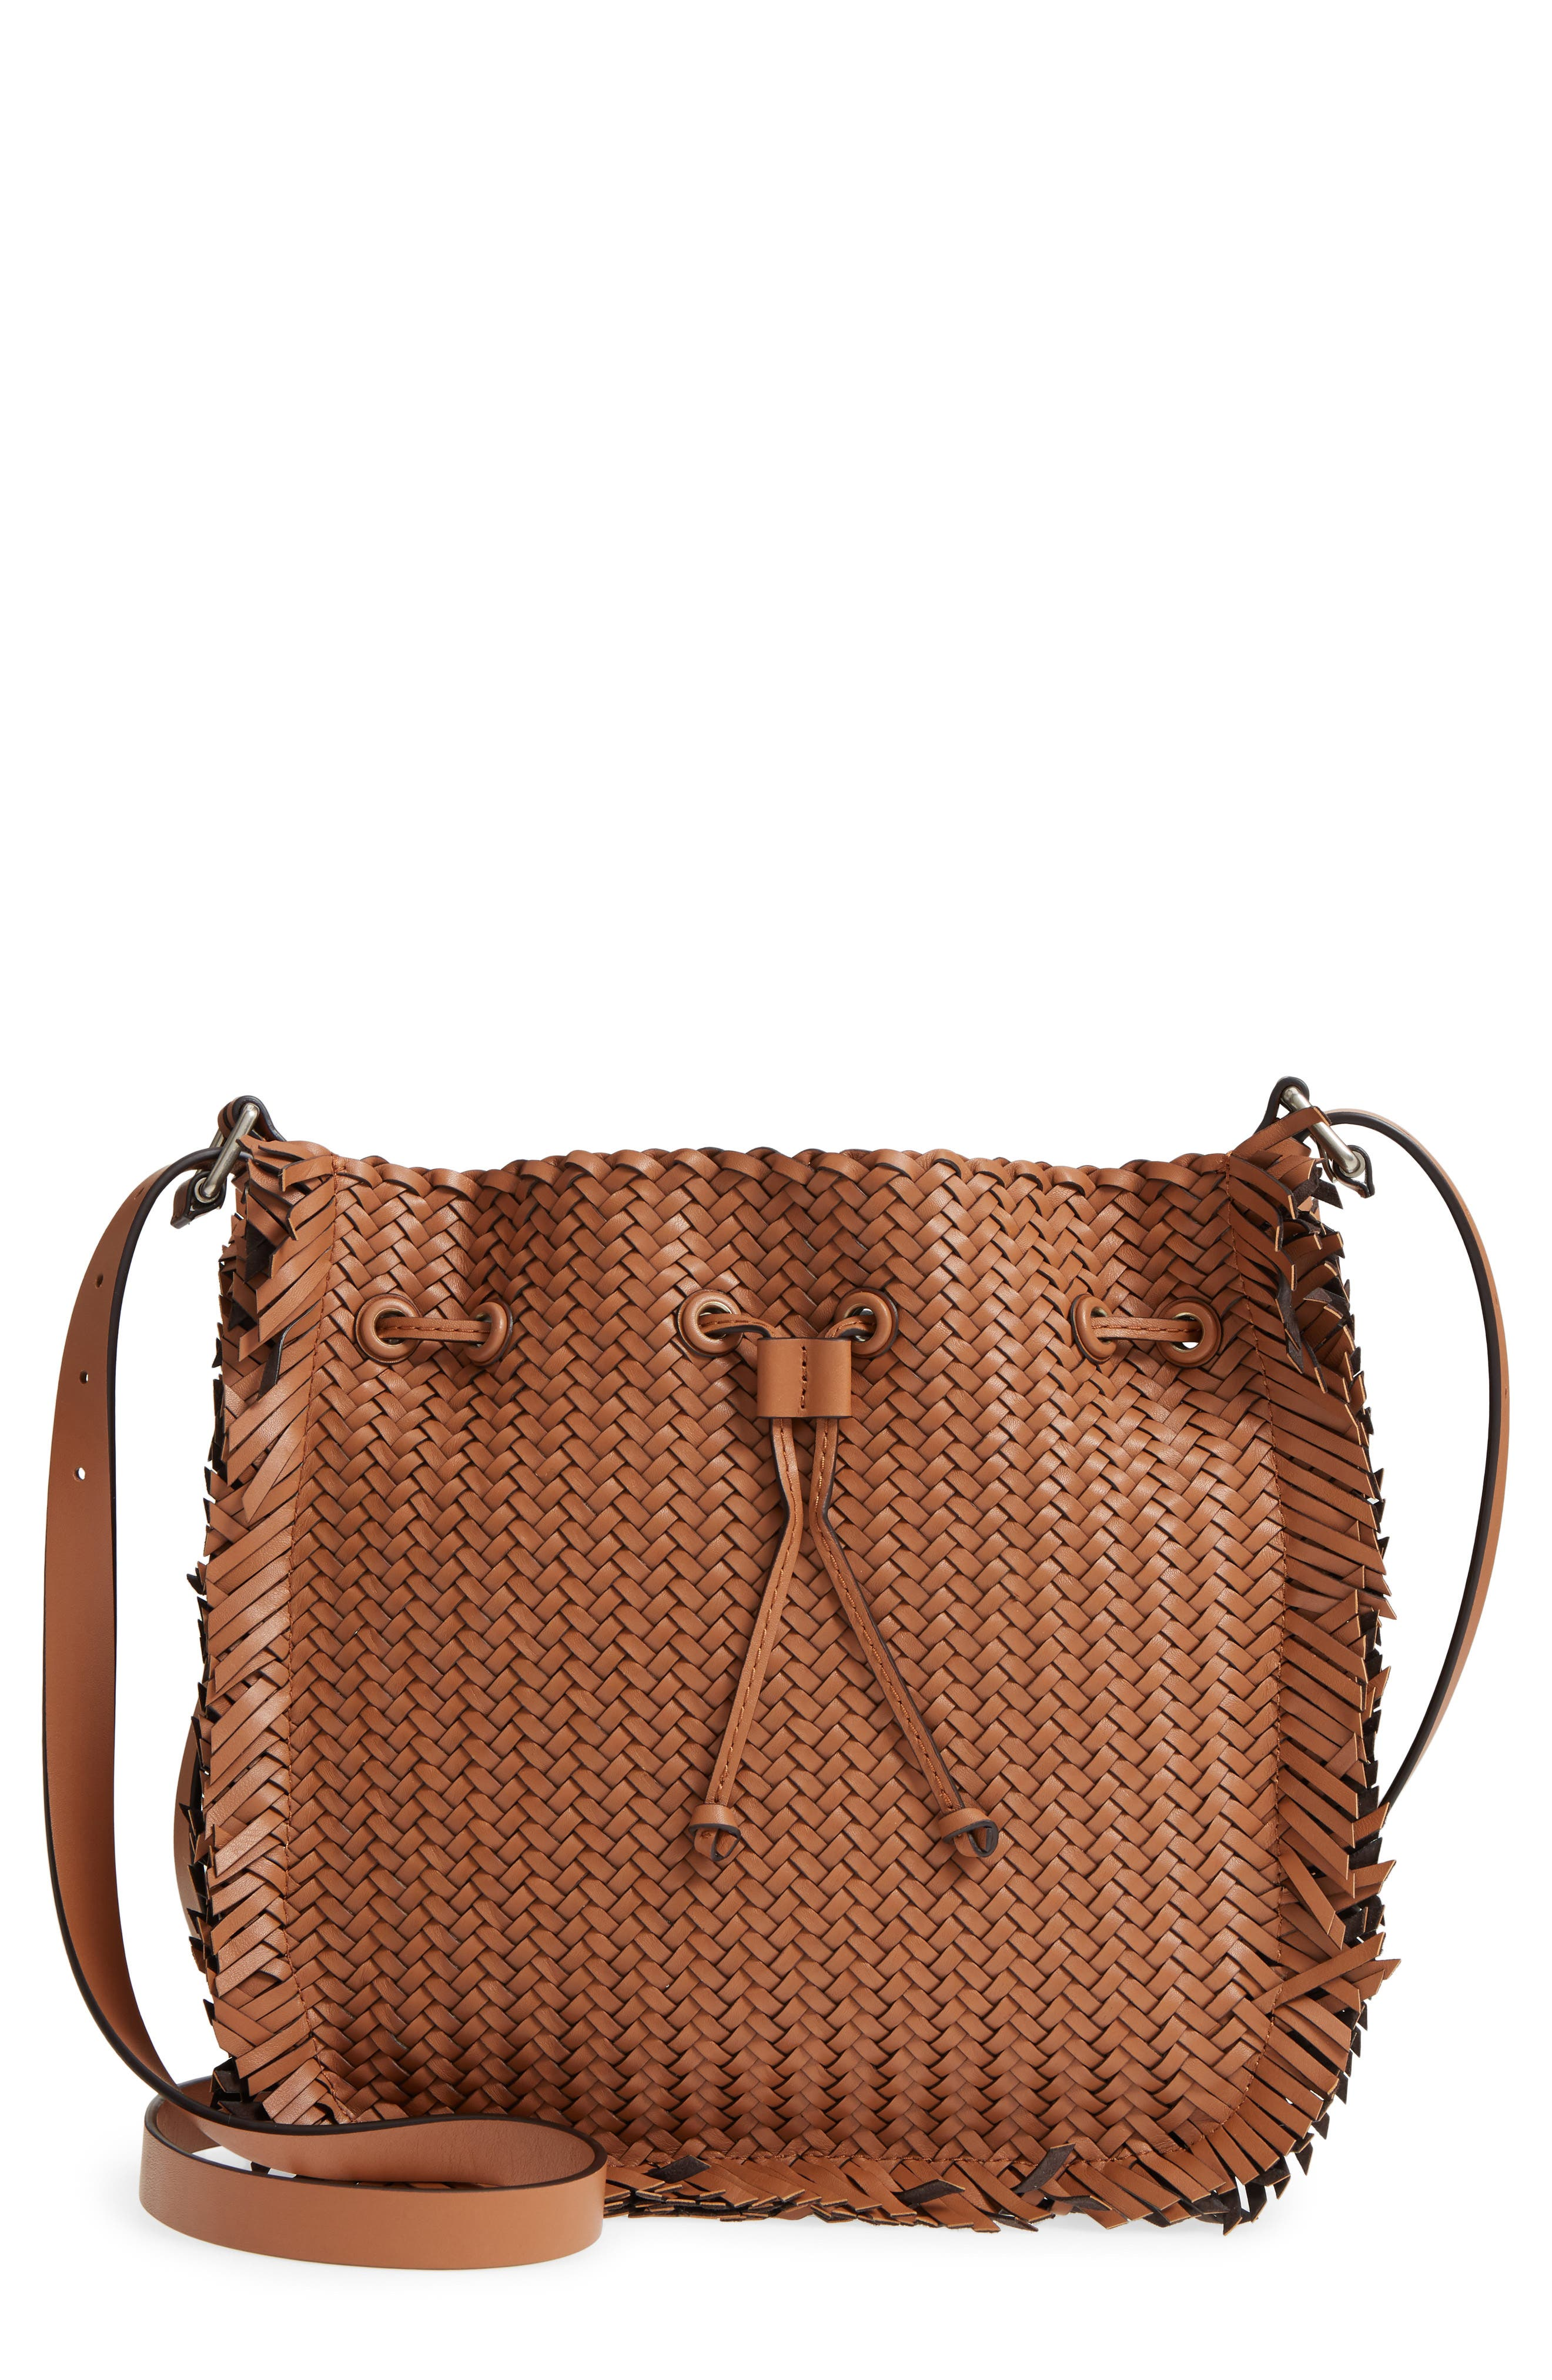 Maldives Woven Frayed Leather Crossbody Bag,                         Main,                         color, 231